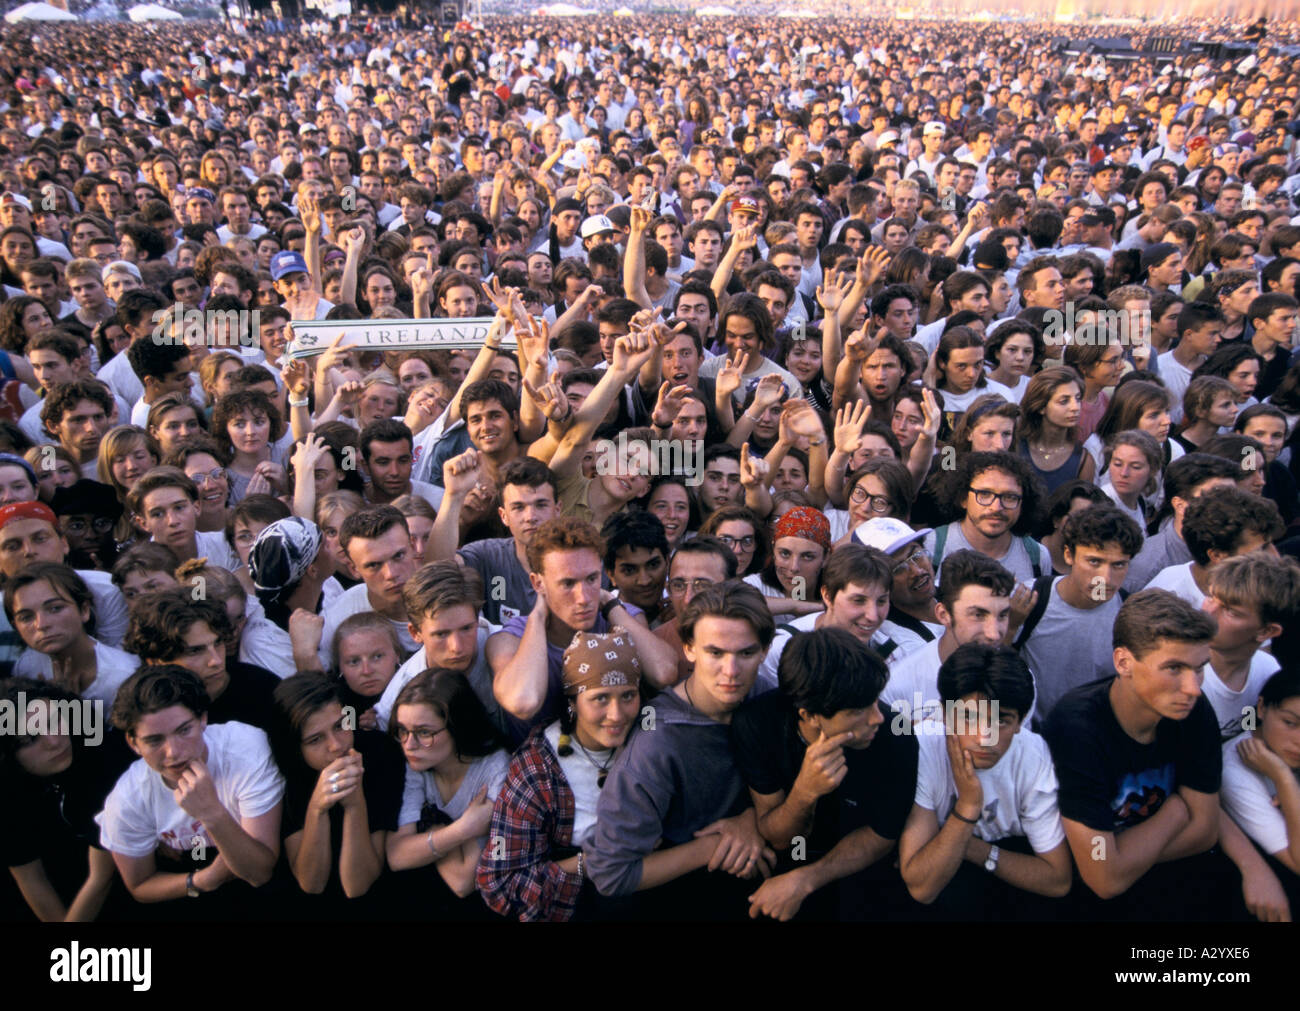 A crowd of fans at a U2 concert in Paris - Stock Image